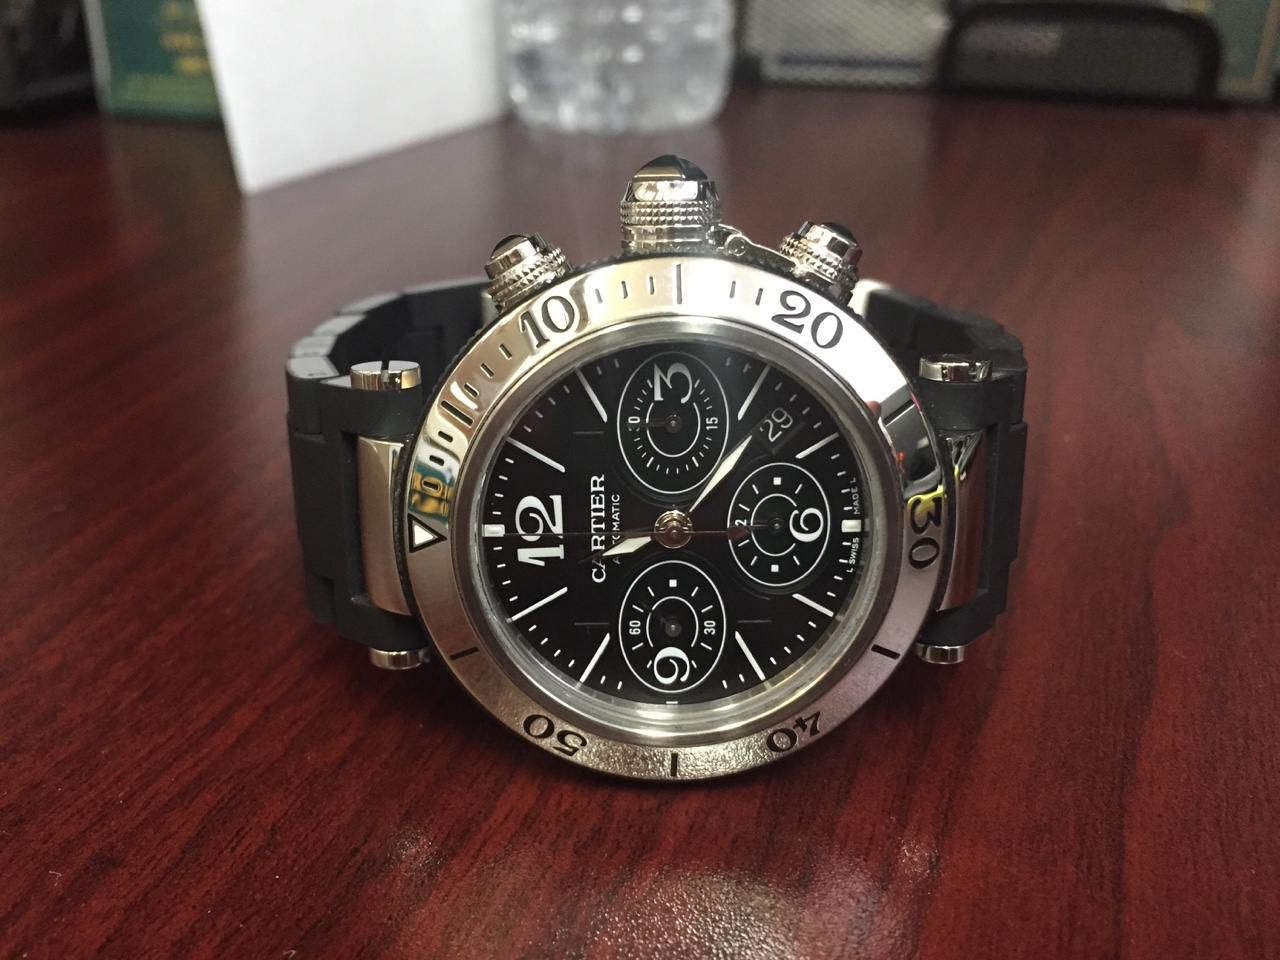 Cartier Seatimer Chronograph - $3,200